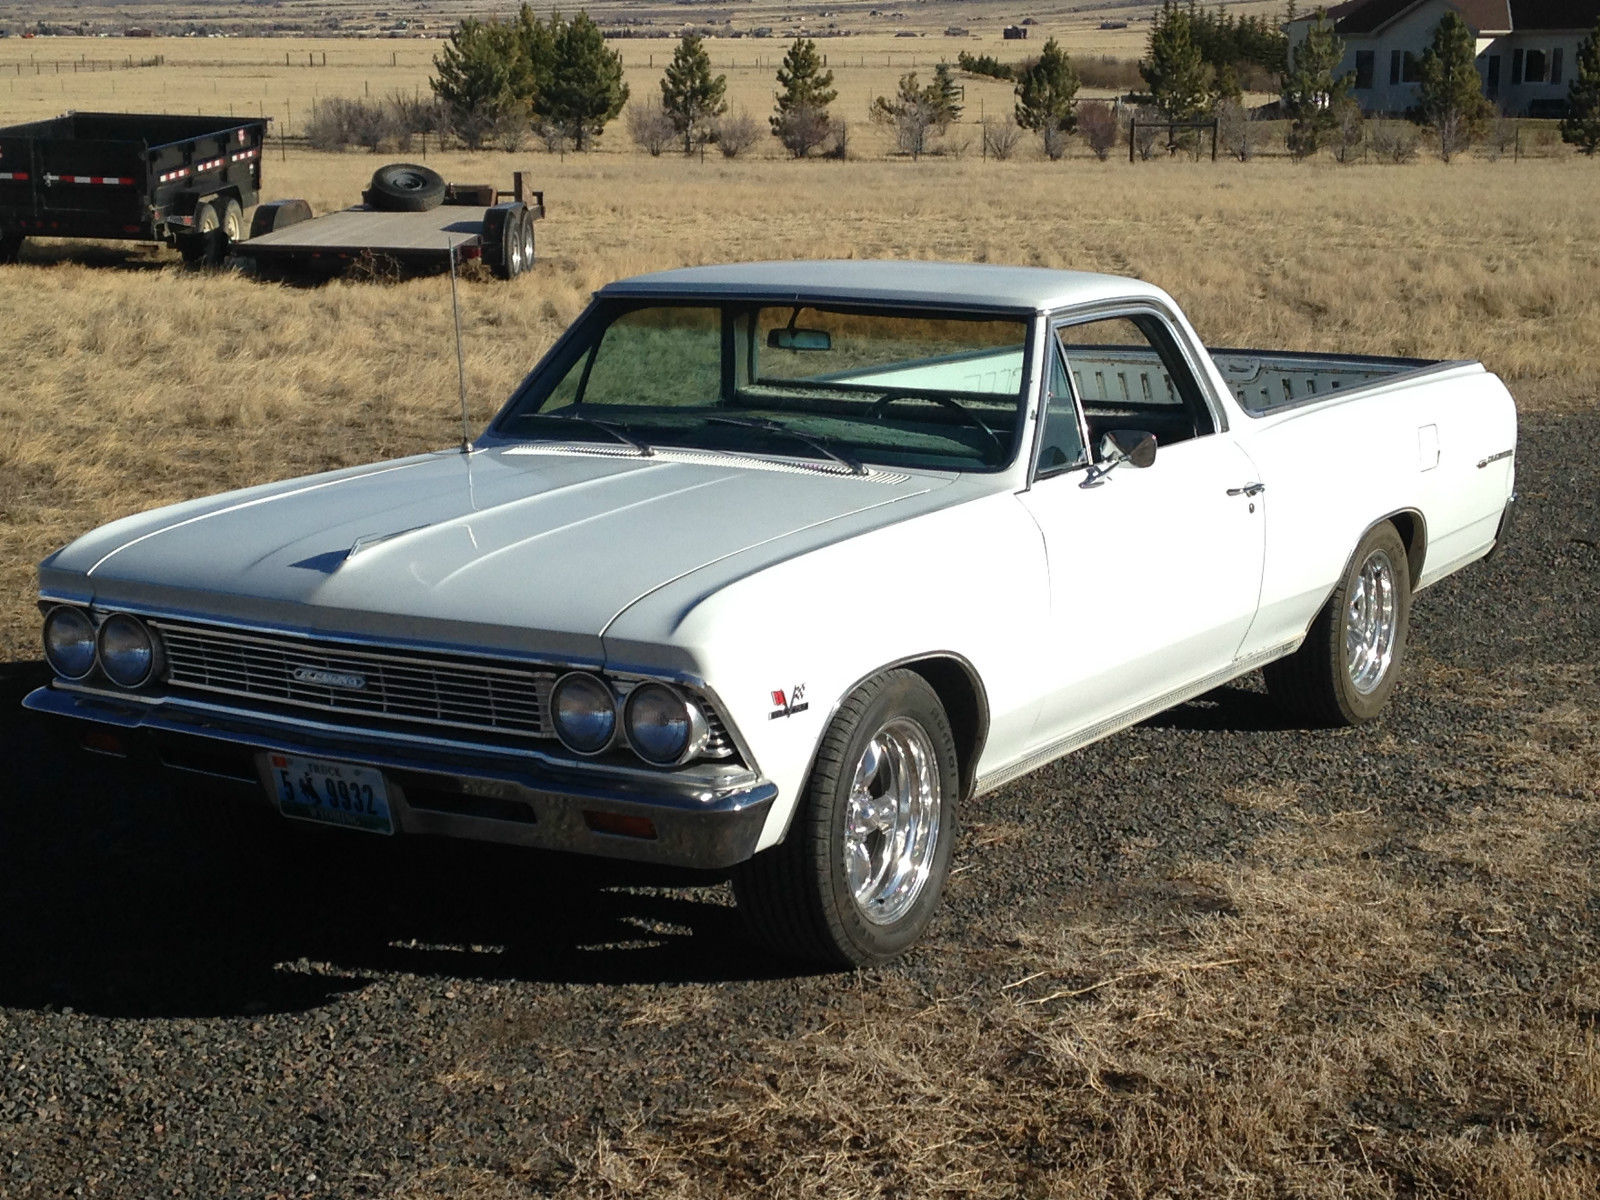 1966 Chevrolet Chevelle El Camino Survivor Just Out Of Storage 454 Ss